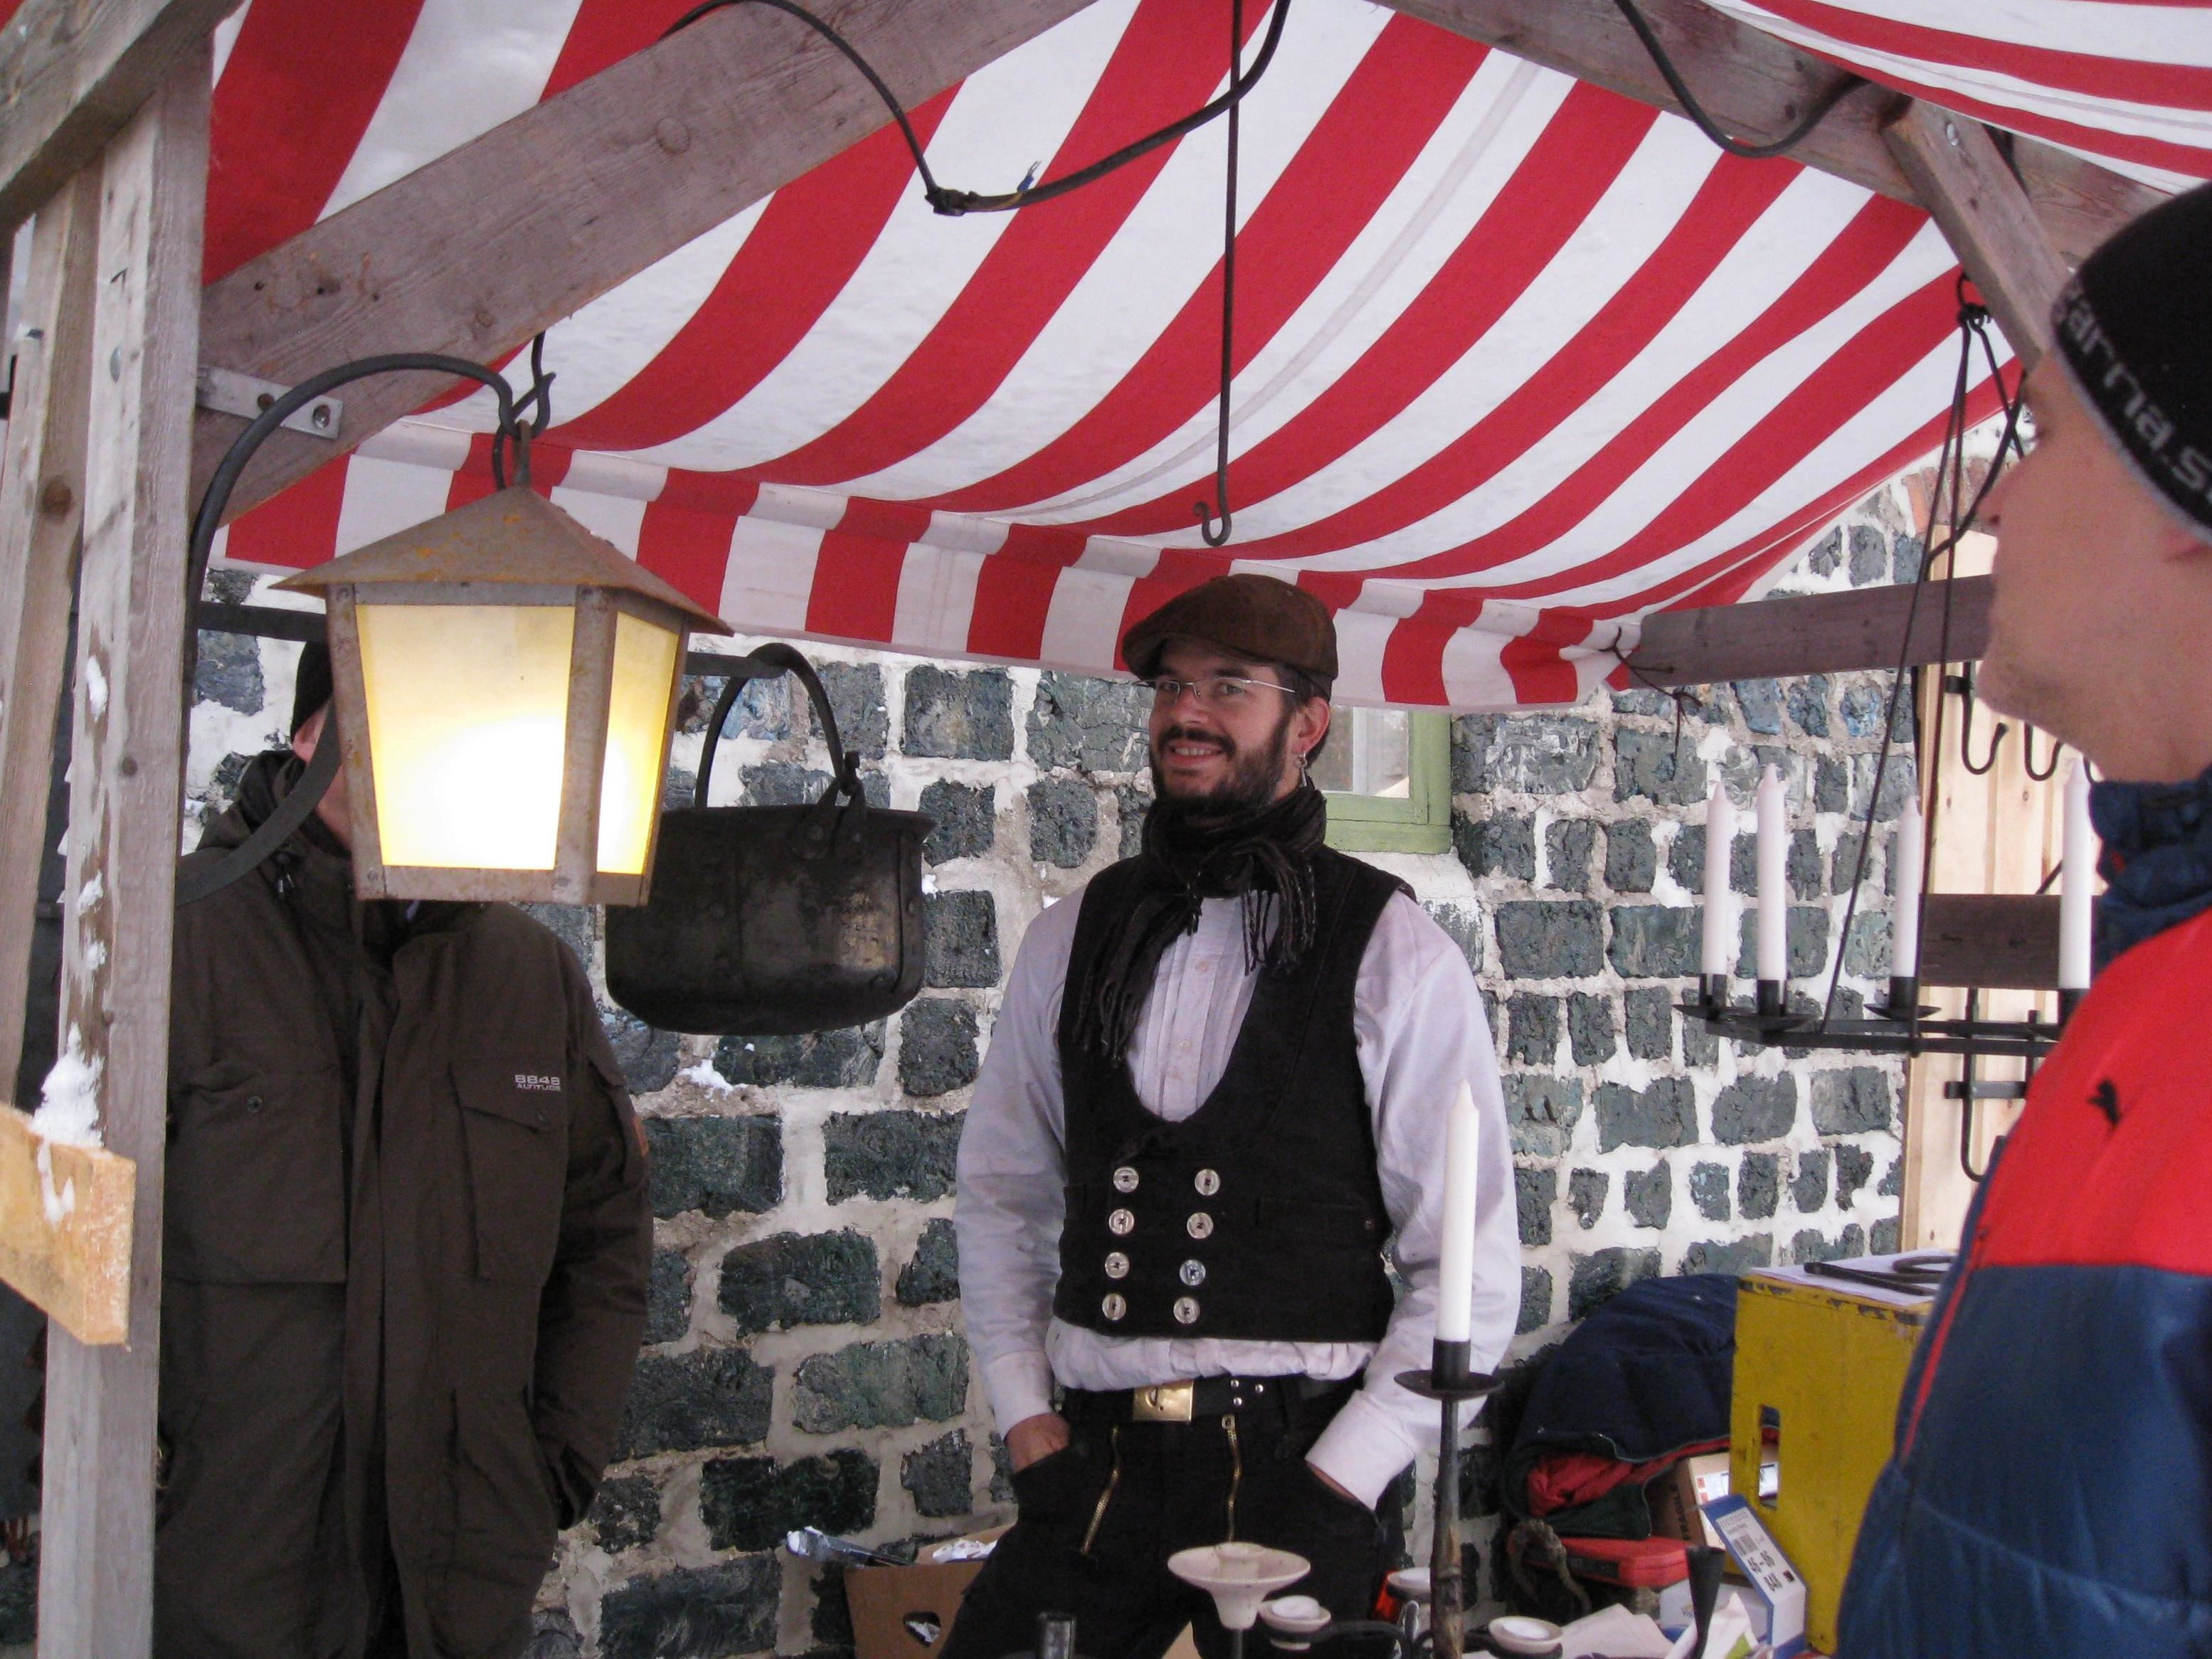 Traditional Christmas Market at Olofsfors Bruk